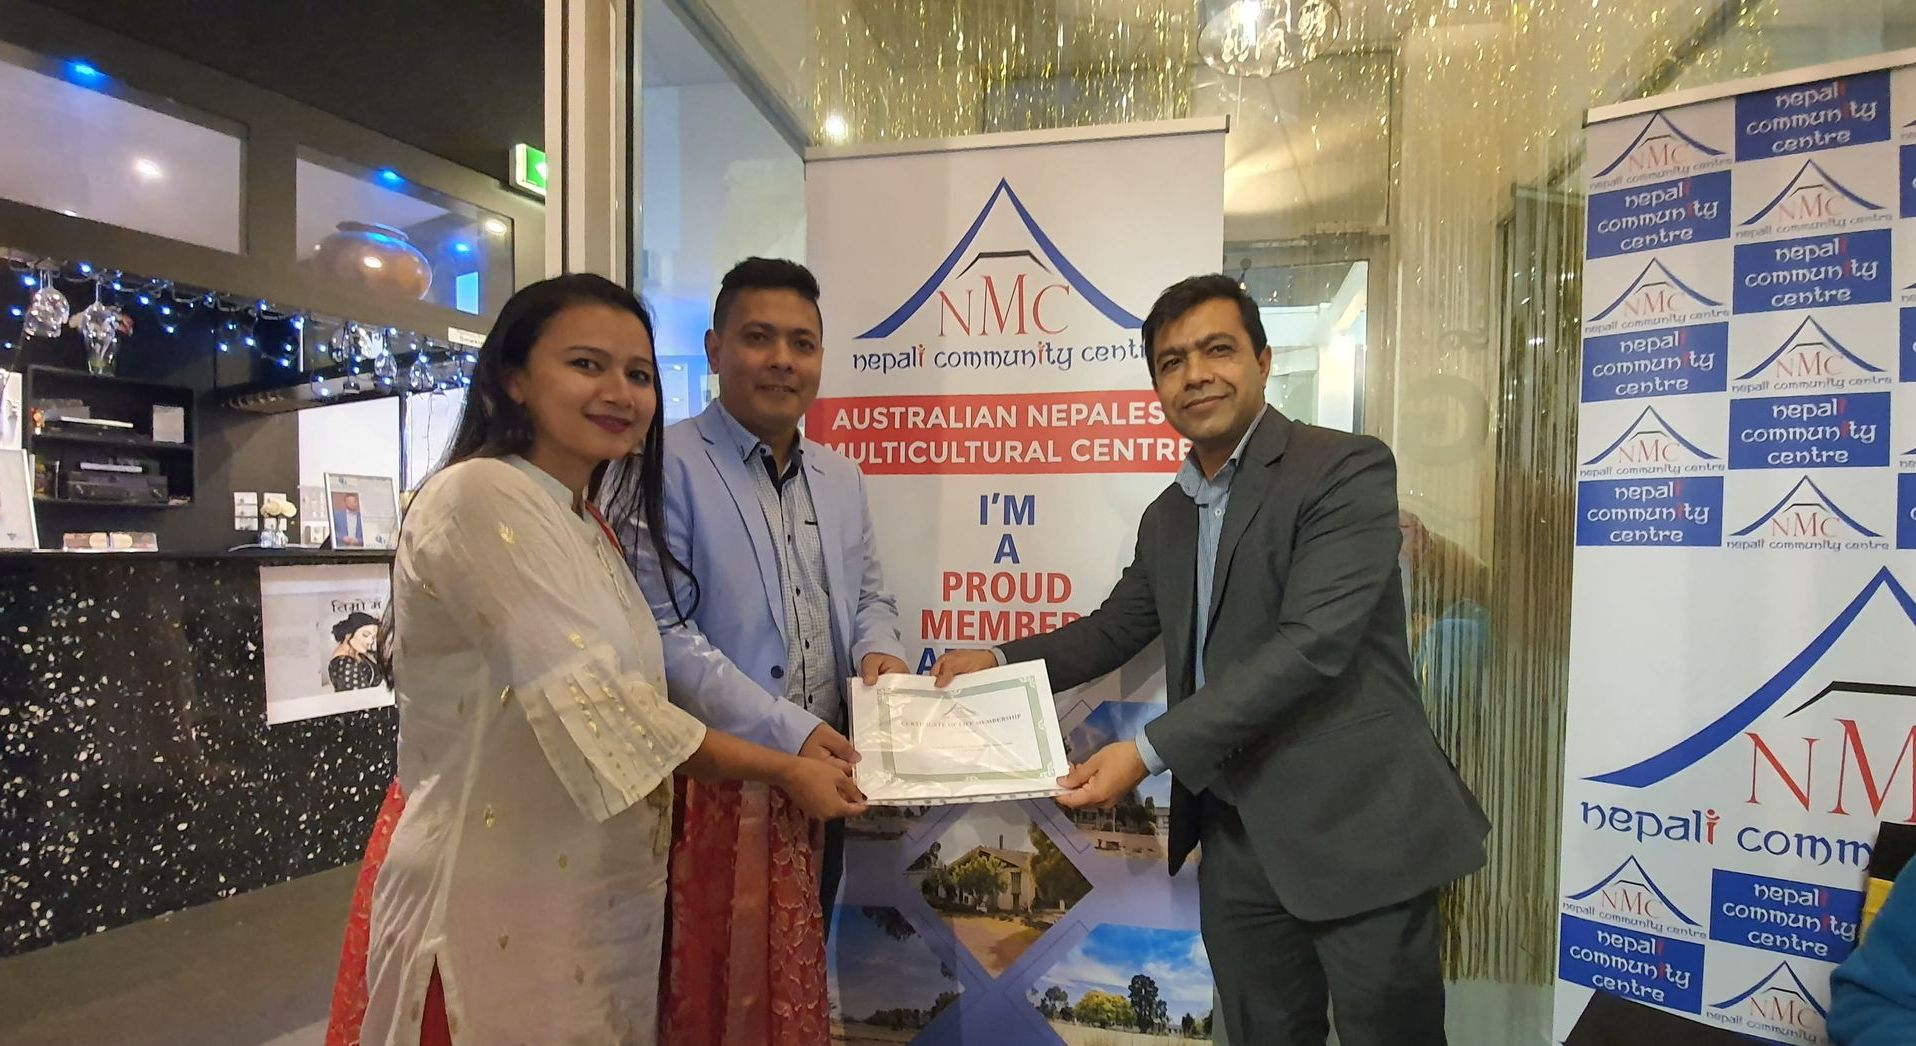 Australian Nepalese Multicultural Centre (ANMC) Expand Membership